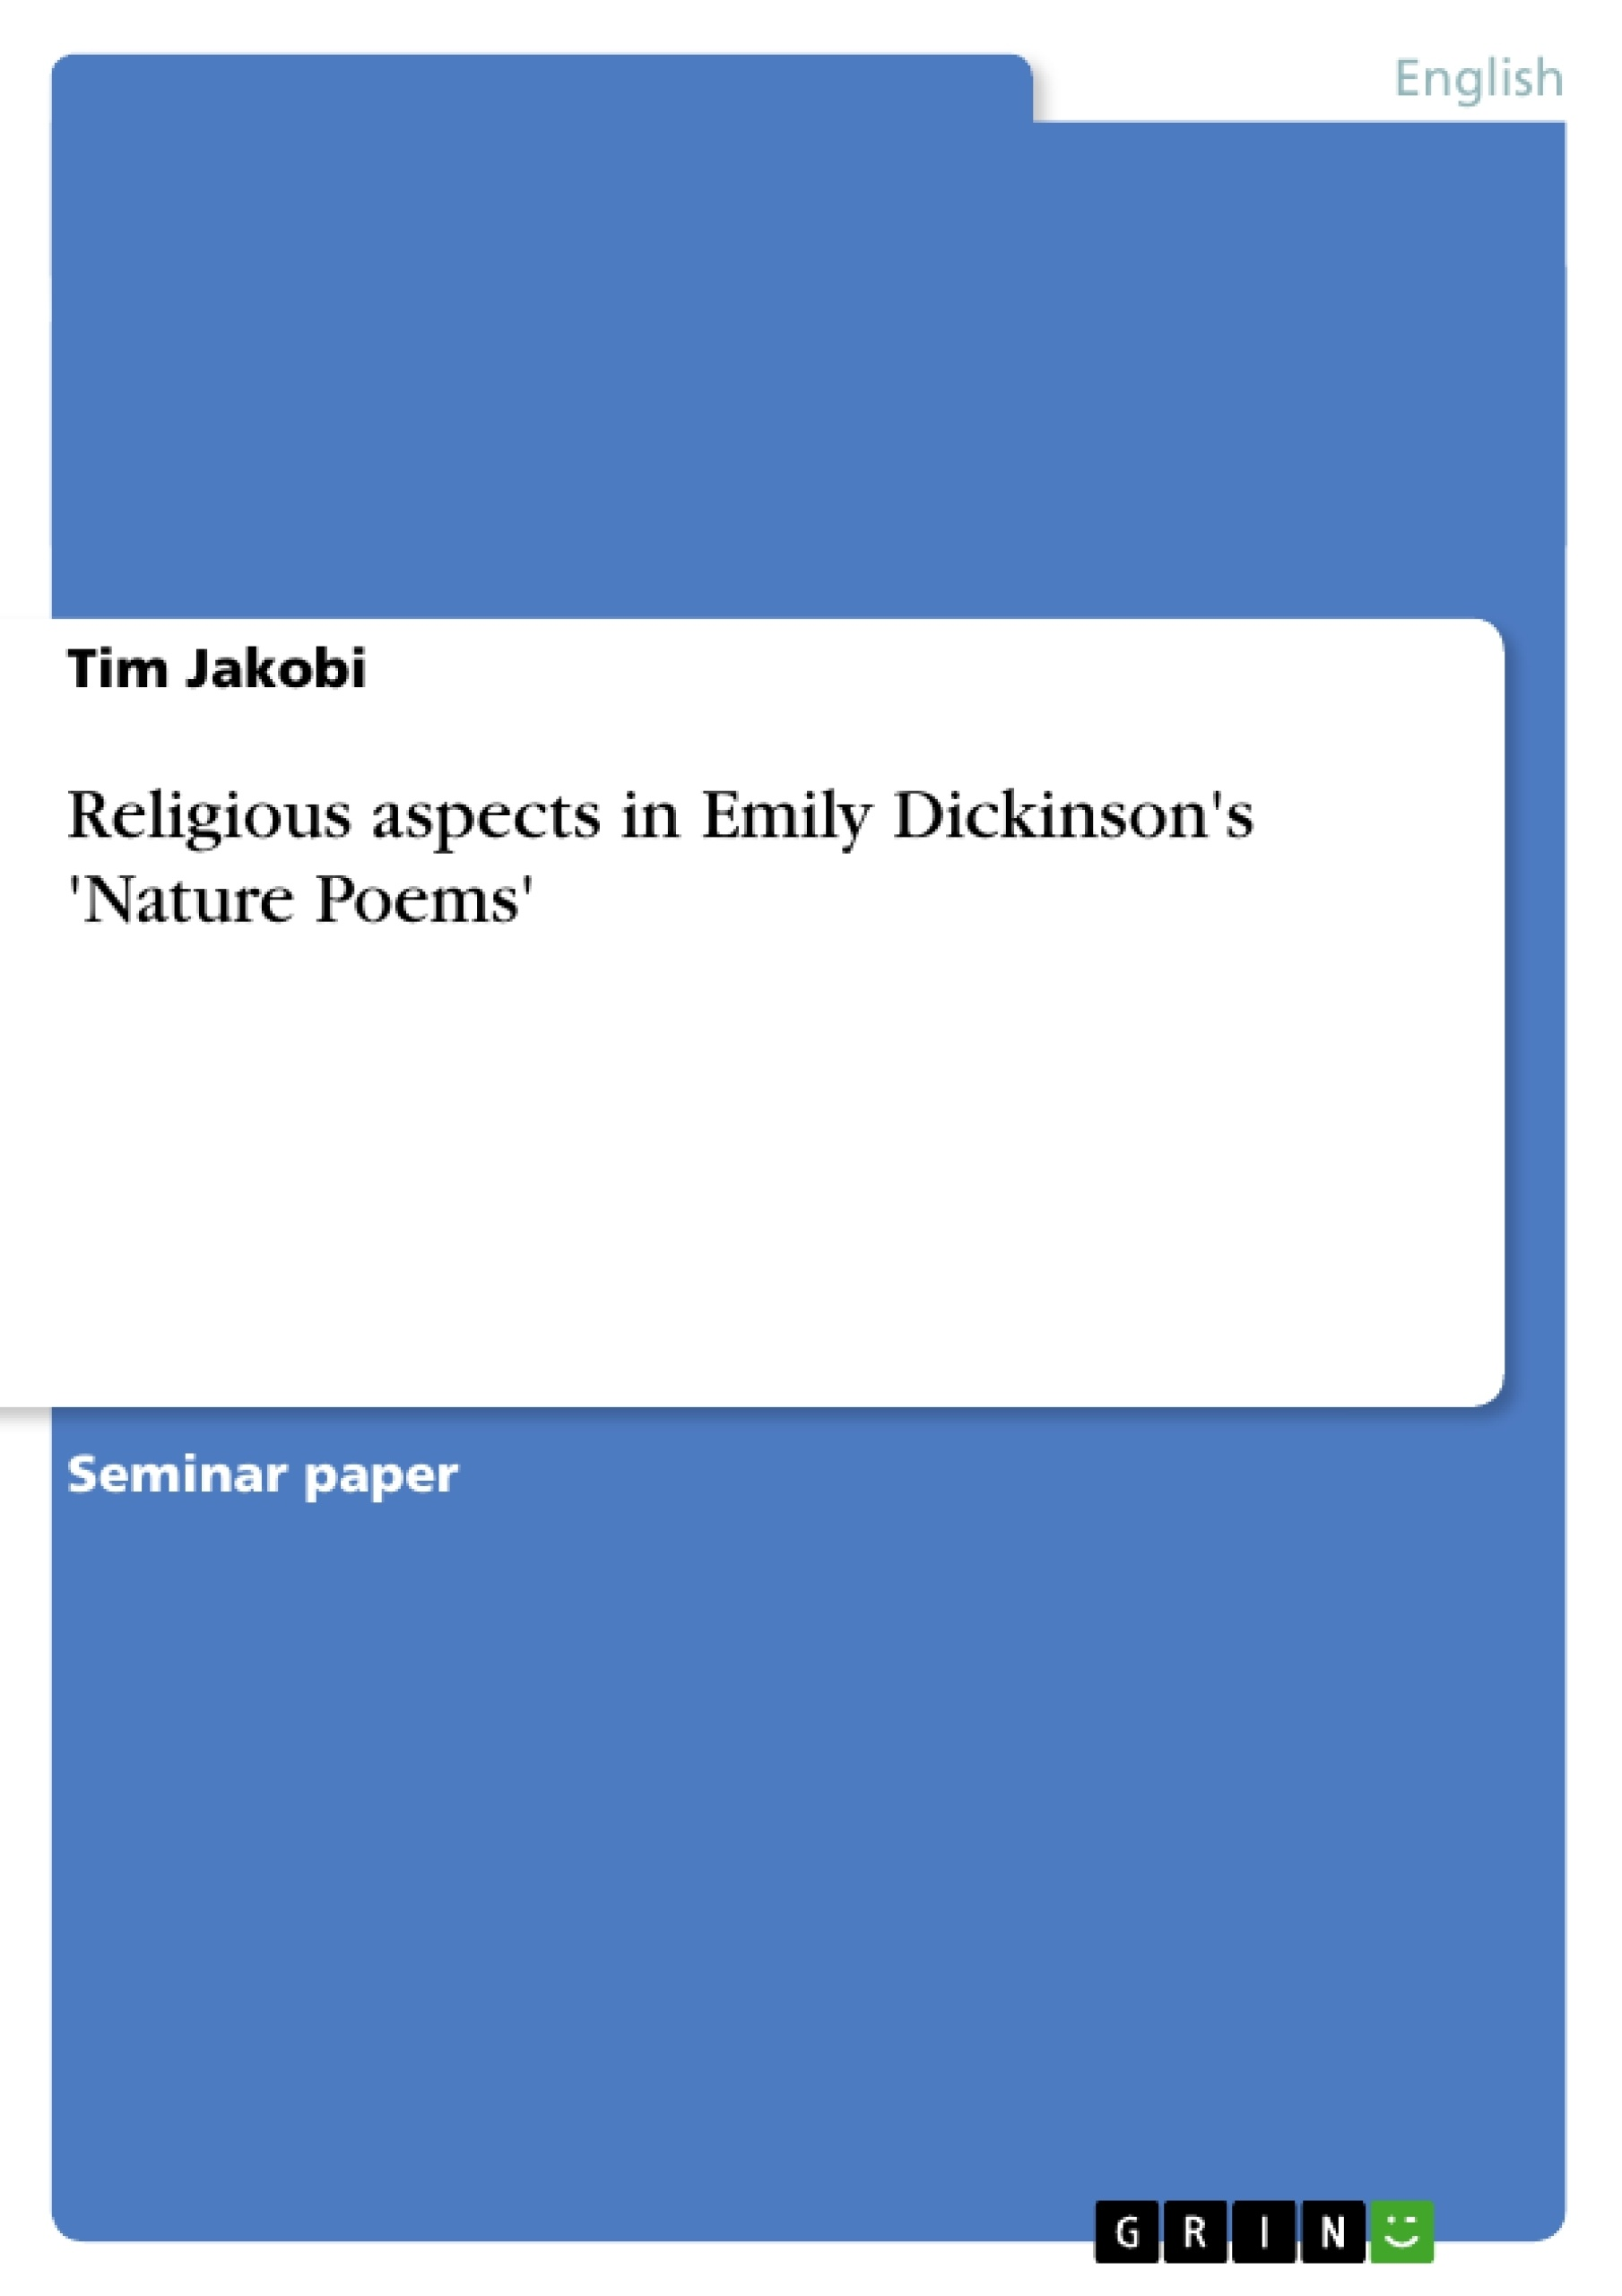 Title: Religious aspects in Emily Dickinson's 'Nature Poems'